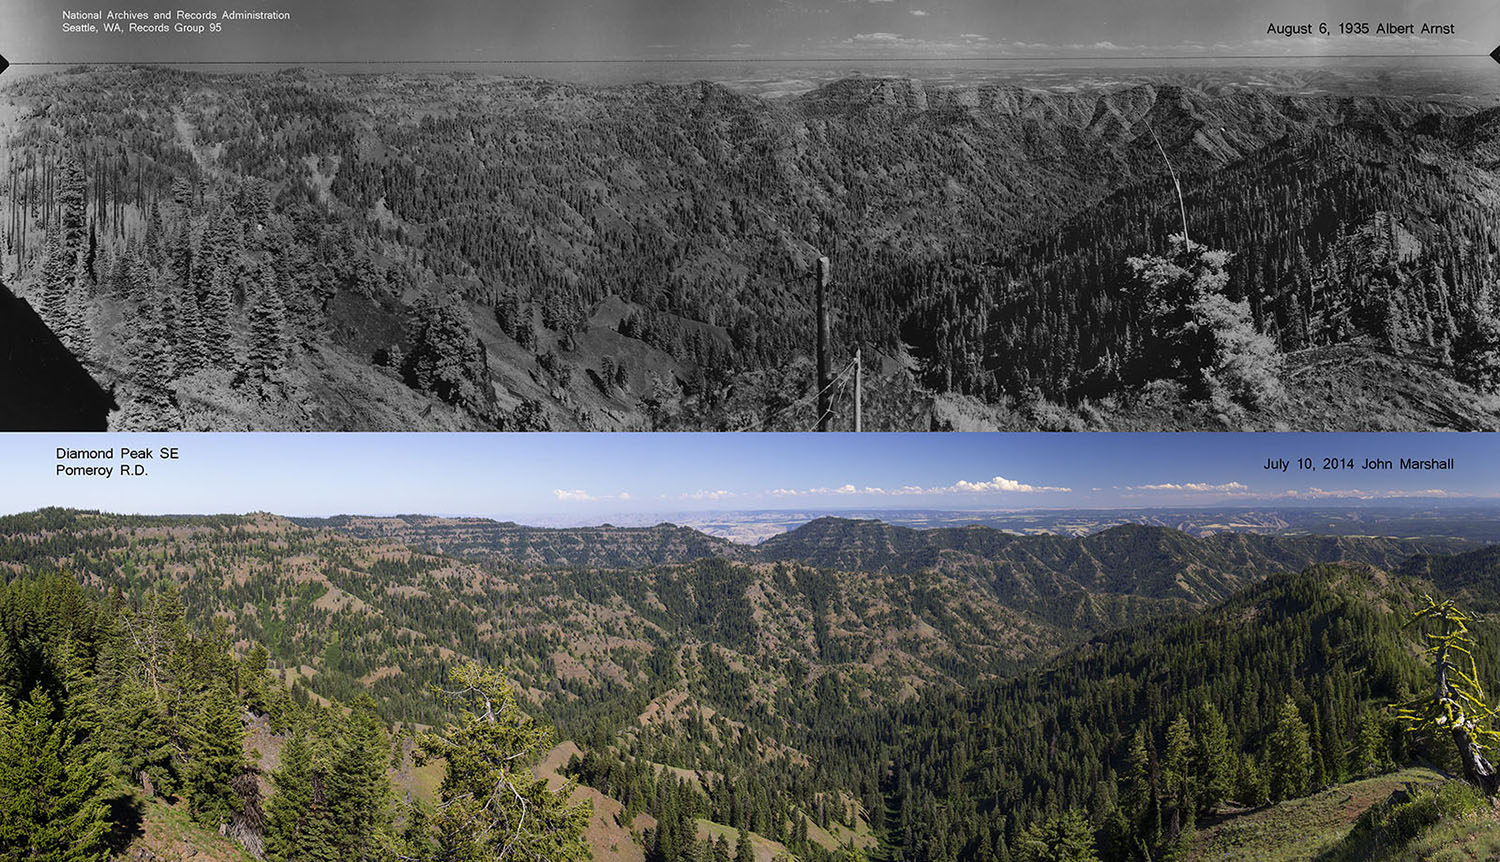 Top photo Albert Arnst 1935 from National Archives and Records Administration, Seattle, WA. Bottom photo 2014 John F Marshall for the Umatilla National Forest.